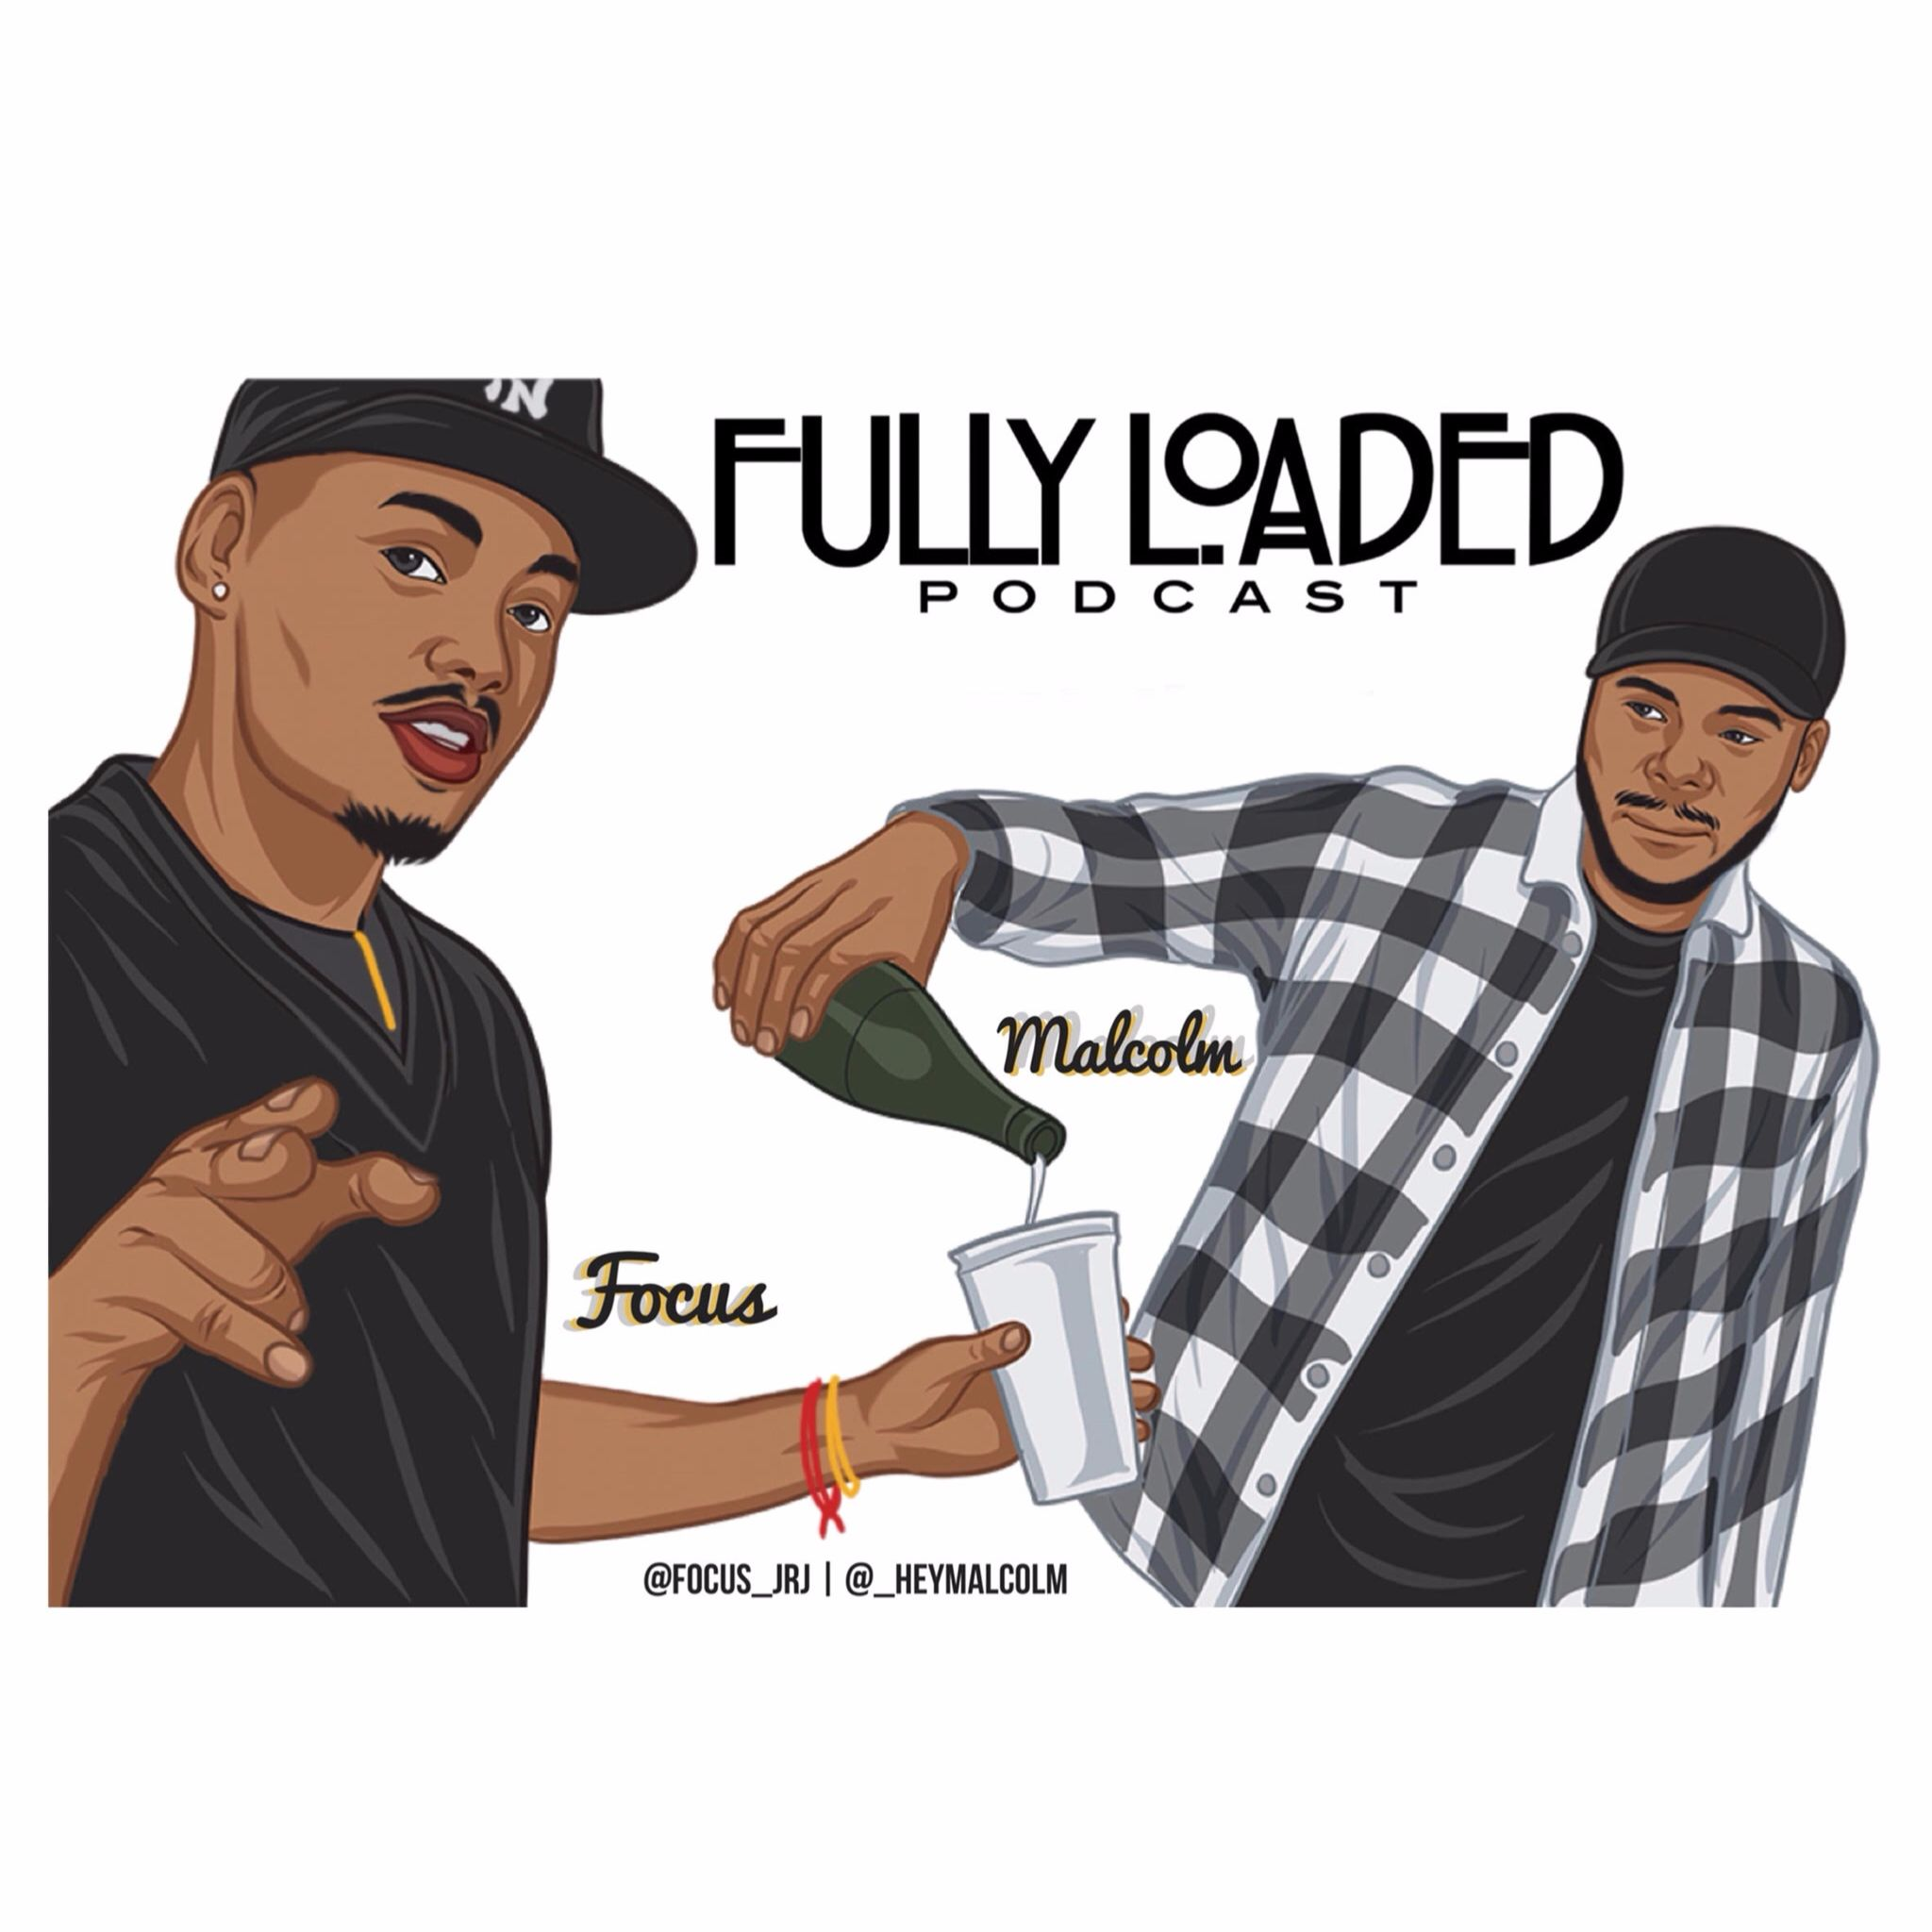 FULLY LOADED Podcast by Focus JRJ & Malcolm on Apple Podcasts